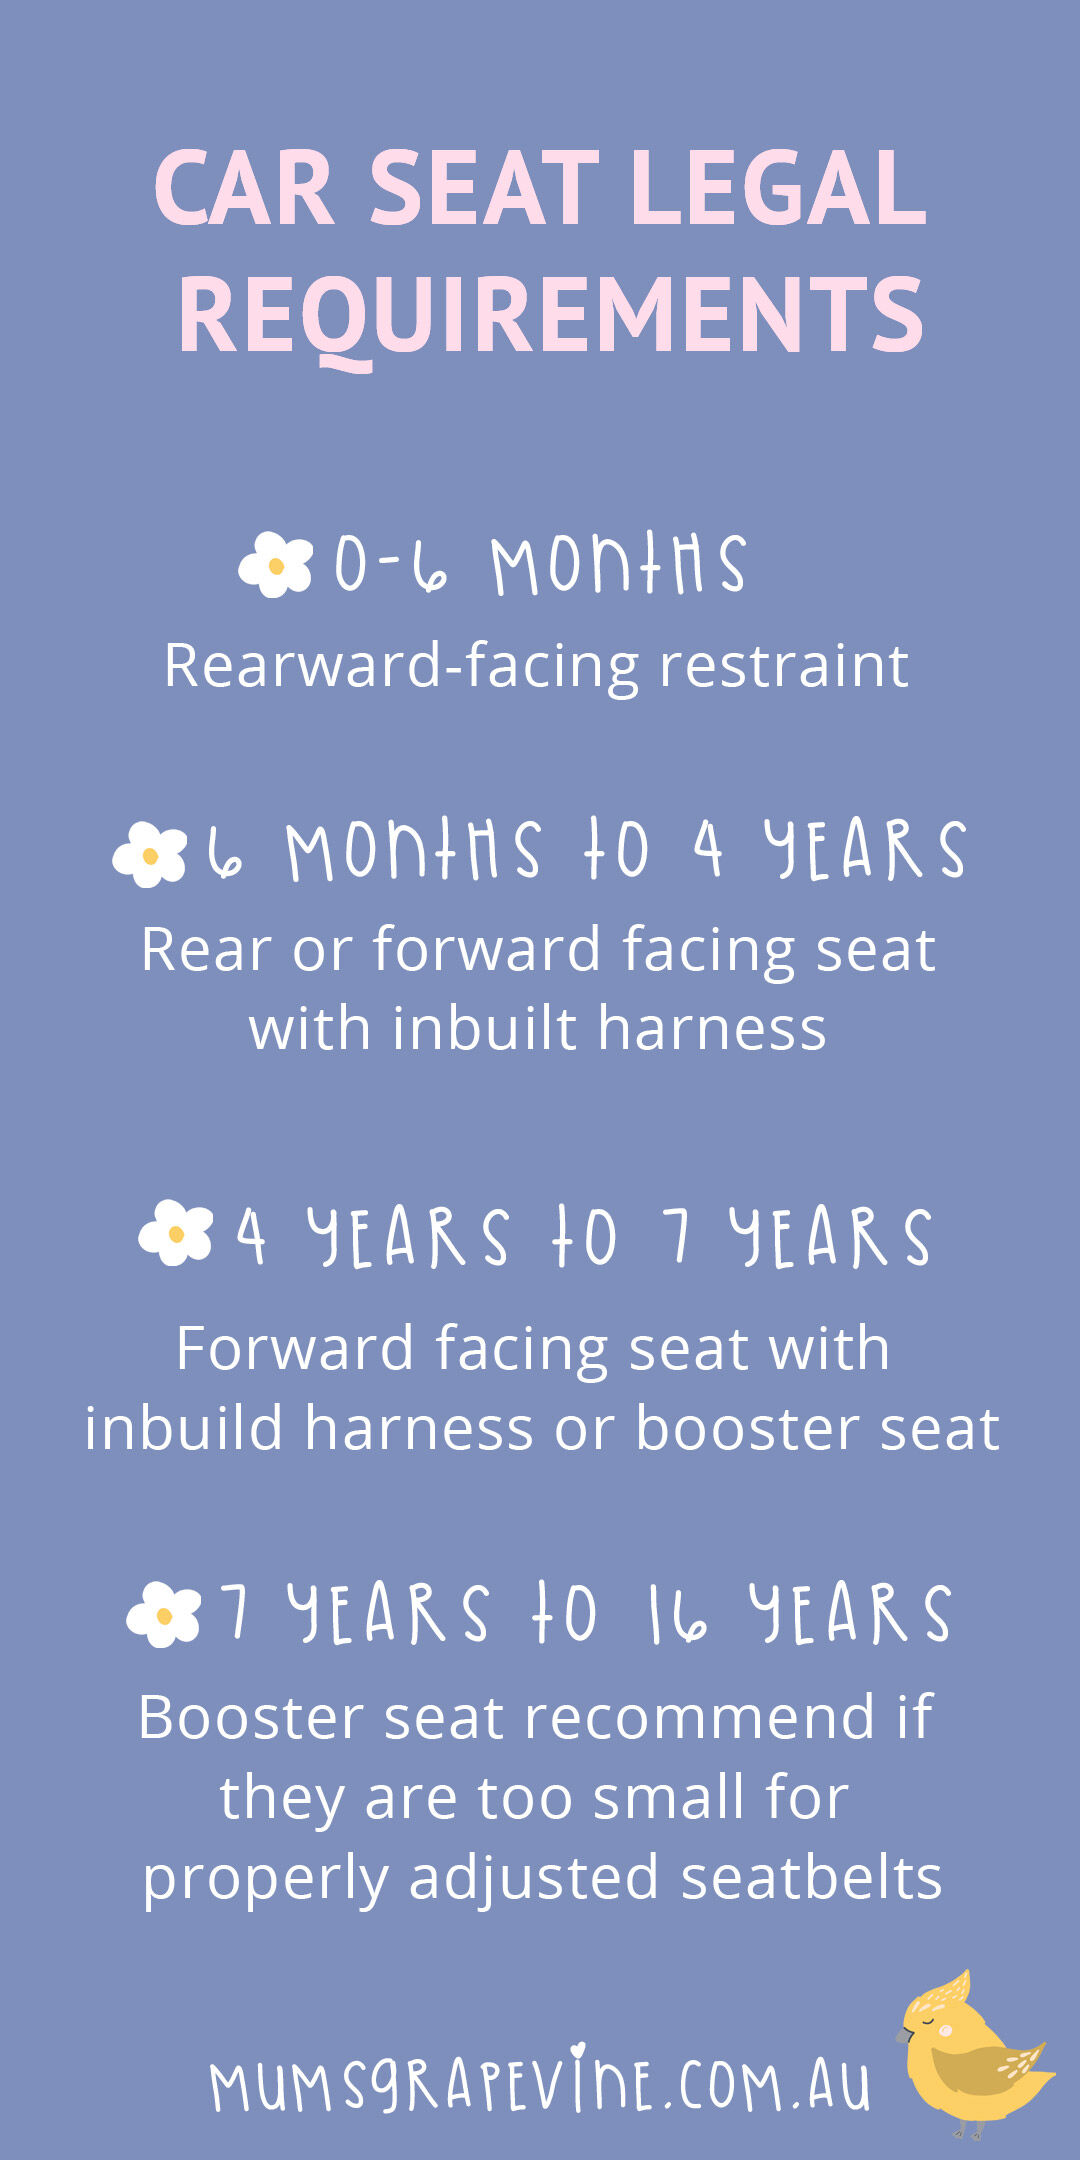 Car Seat Legal Requirements